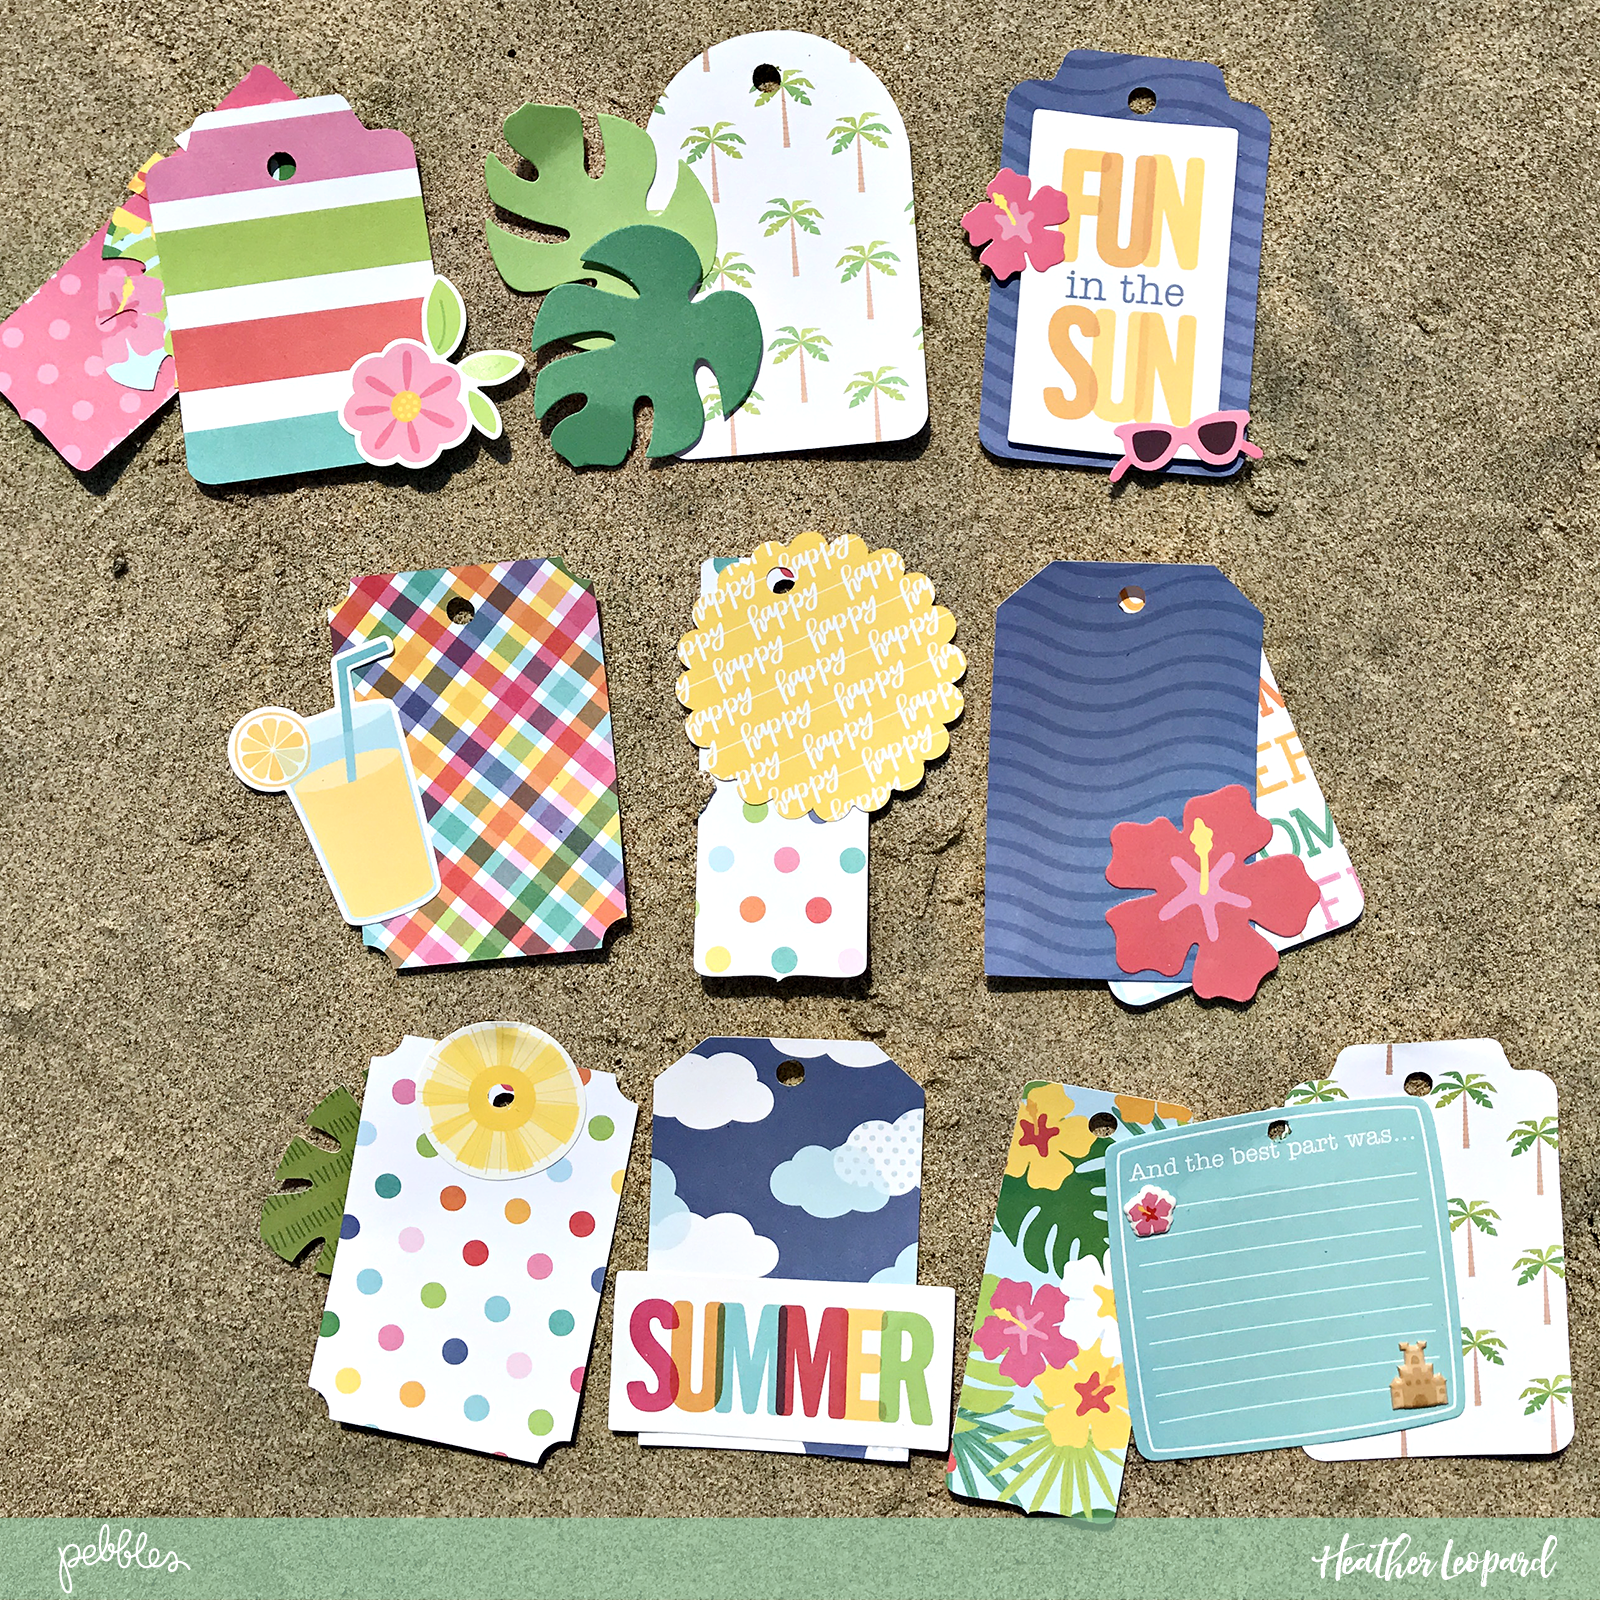 Quick Beach Tag Mini Album by @heatherleopard using the #Sunshiny_Days collection by @PebblesInc #madewithpebbles #pebblesinc #minialbum #tags #summer #beach #beachdays #hawaii